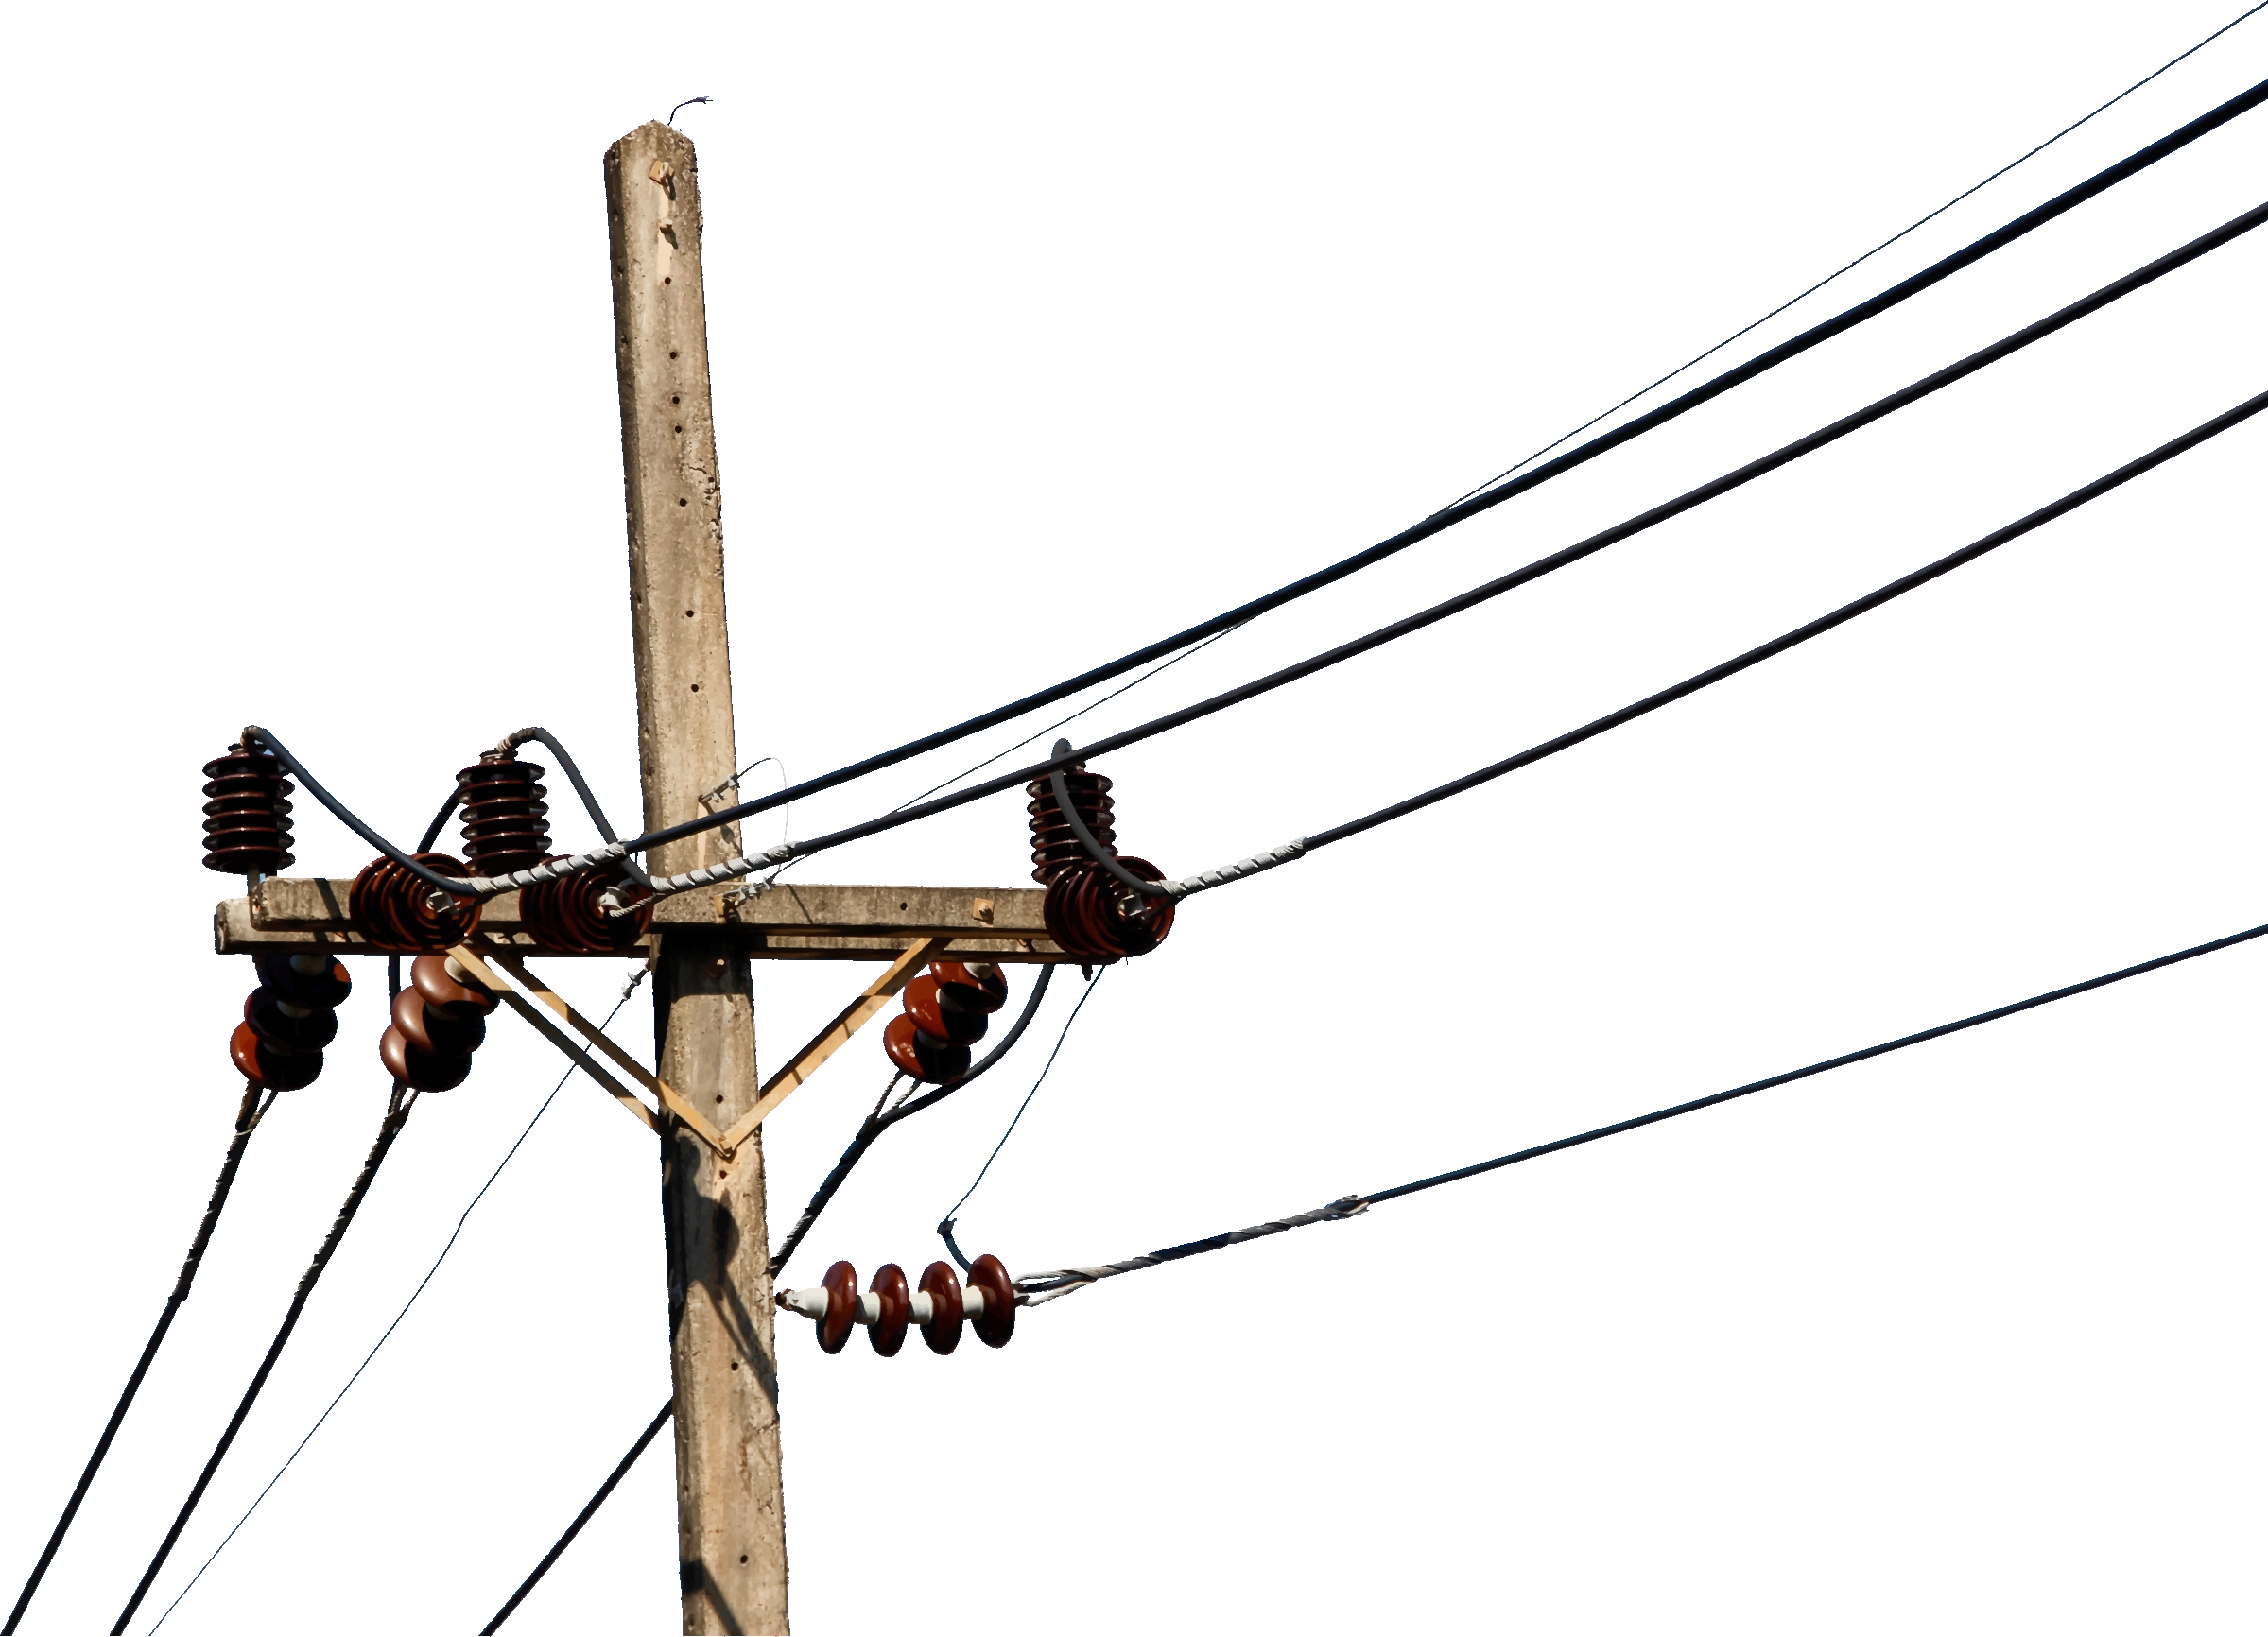 Electric clipart electric conductor. Powerlines big image png